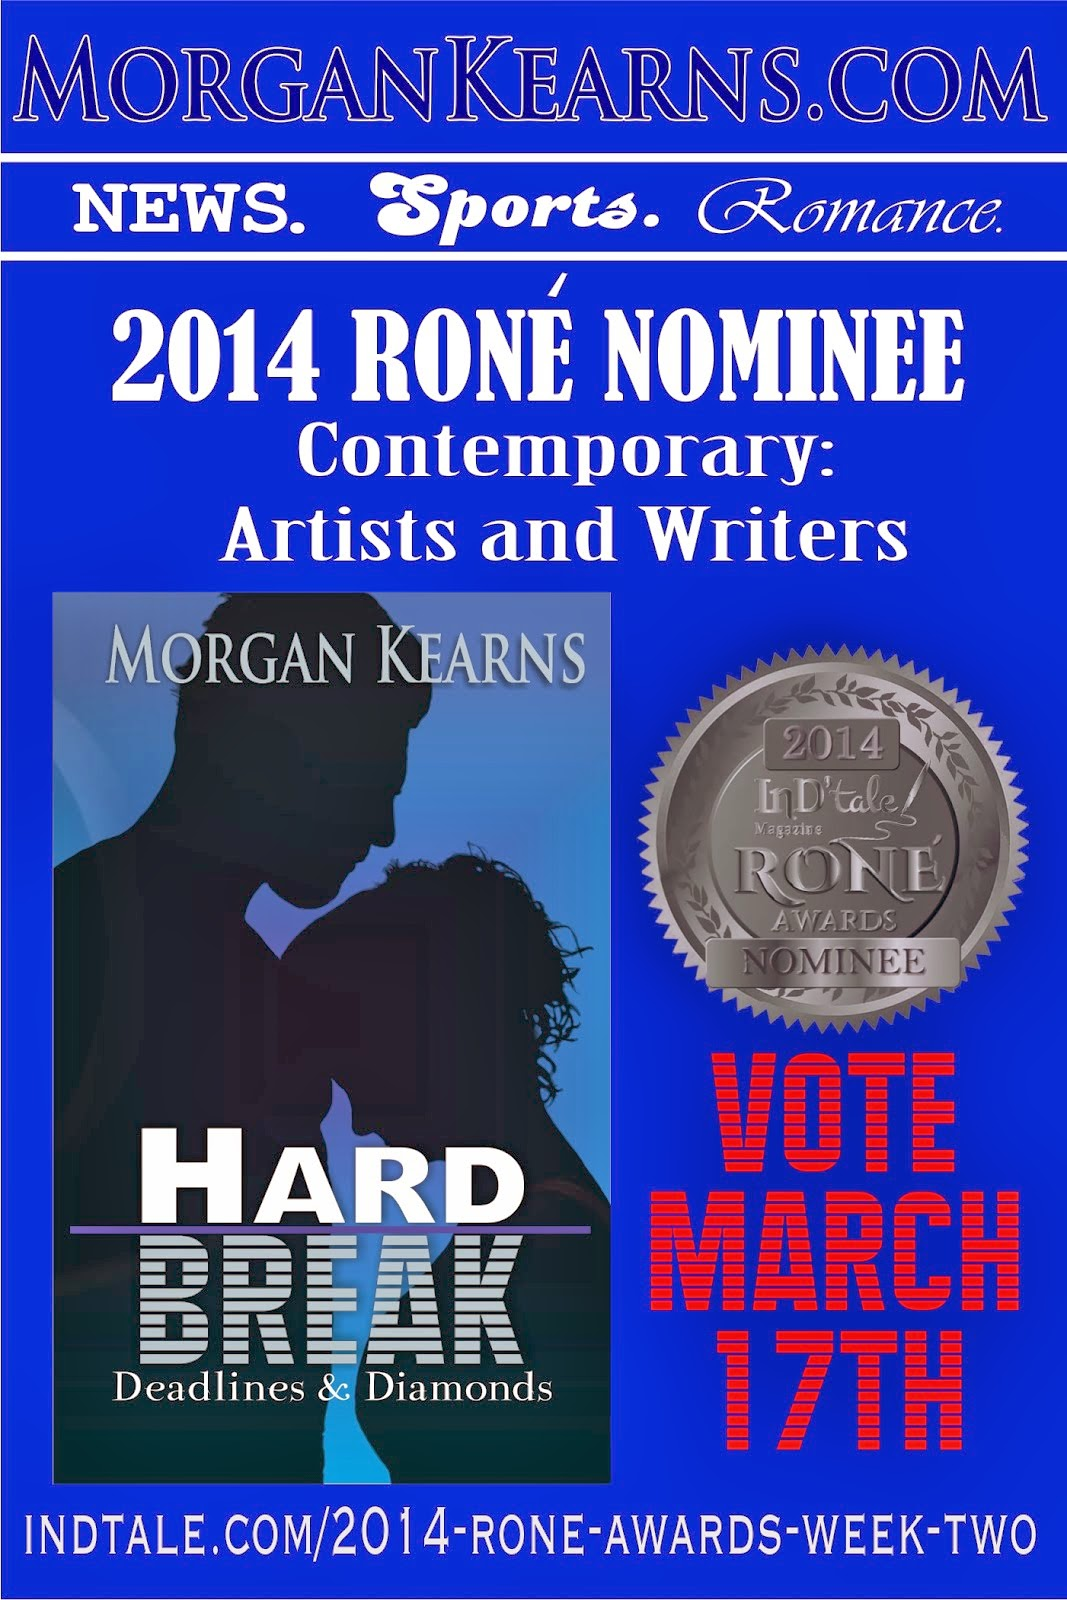 Hard Break ~ 2013 RONE Finalist